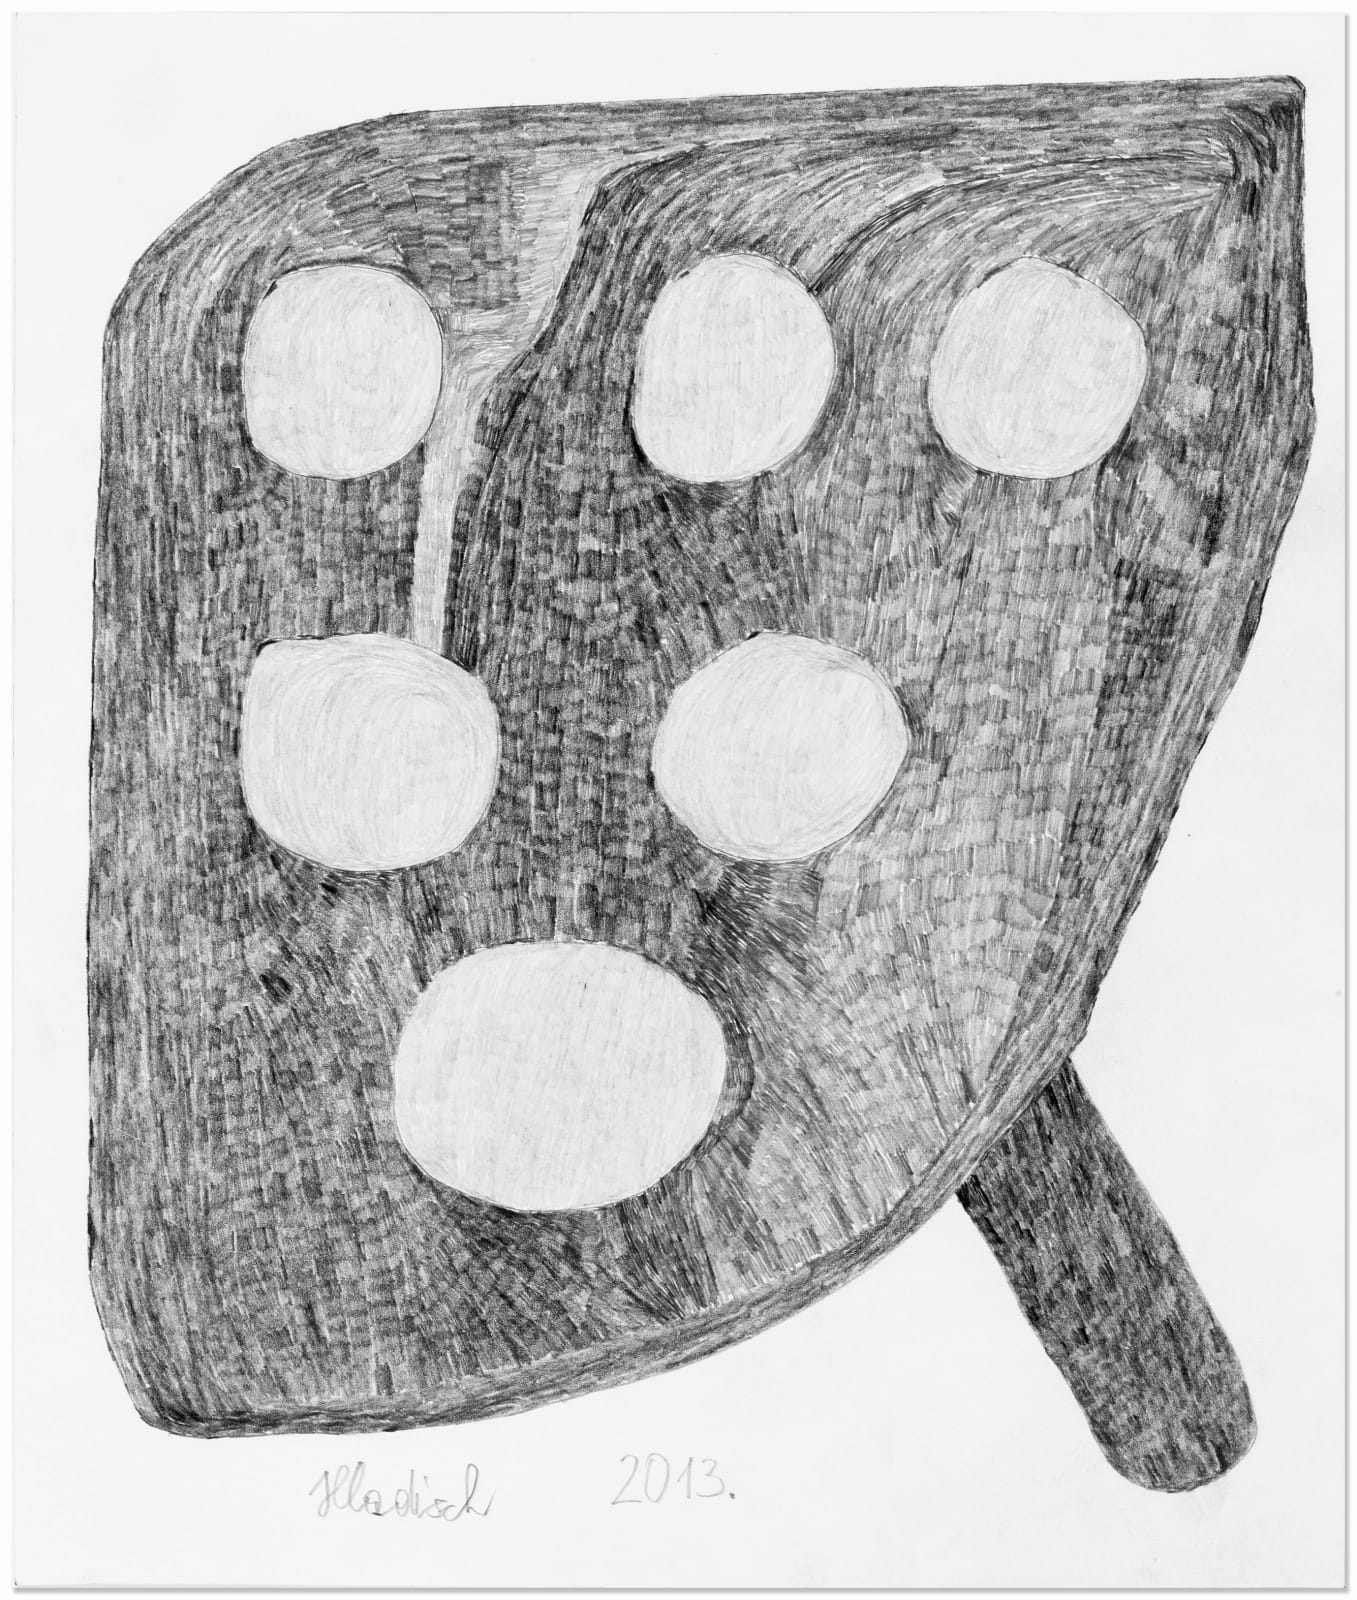 PAN, 2013 Graphite on paper 13 x 11 in. (33.1 x 28 cm) HH 3 $3,000